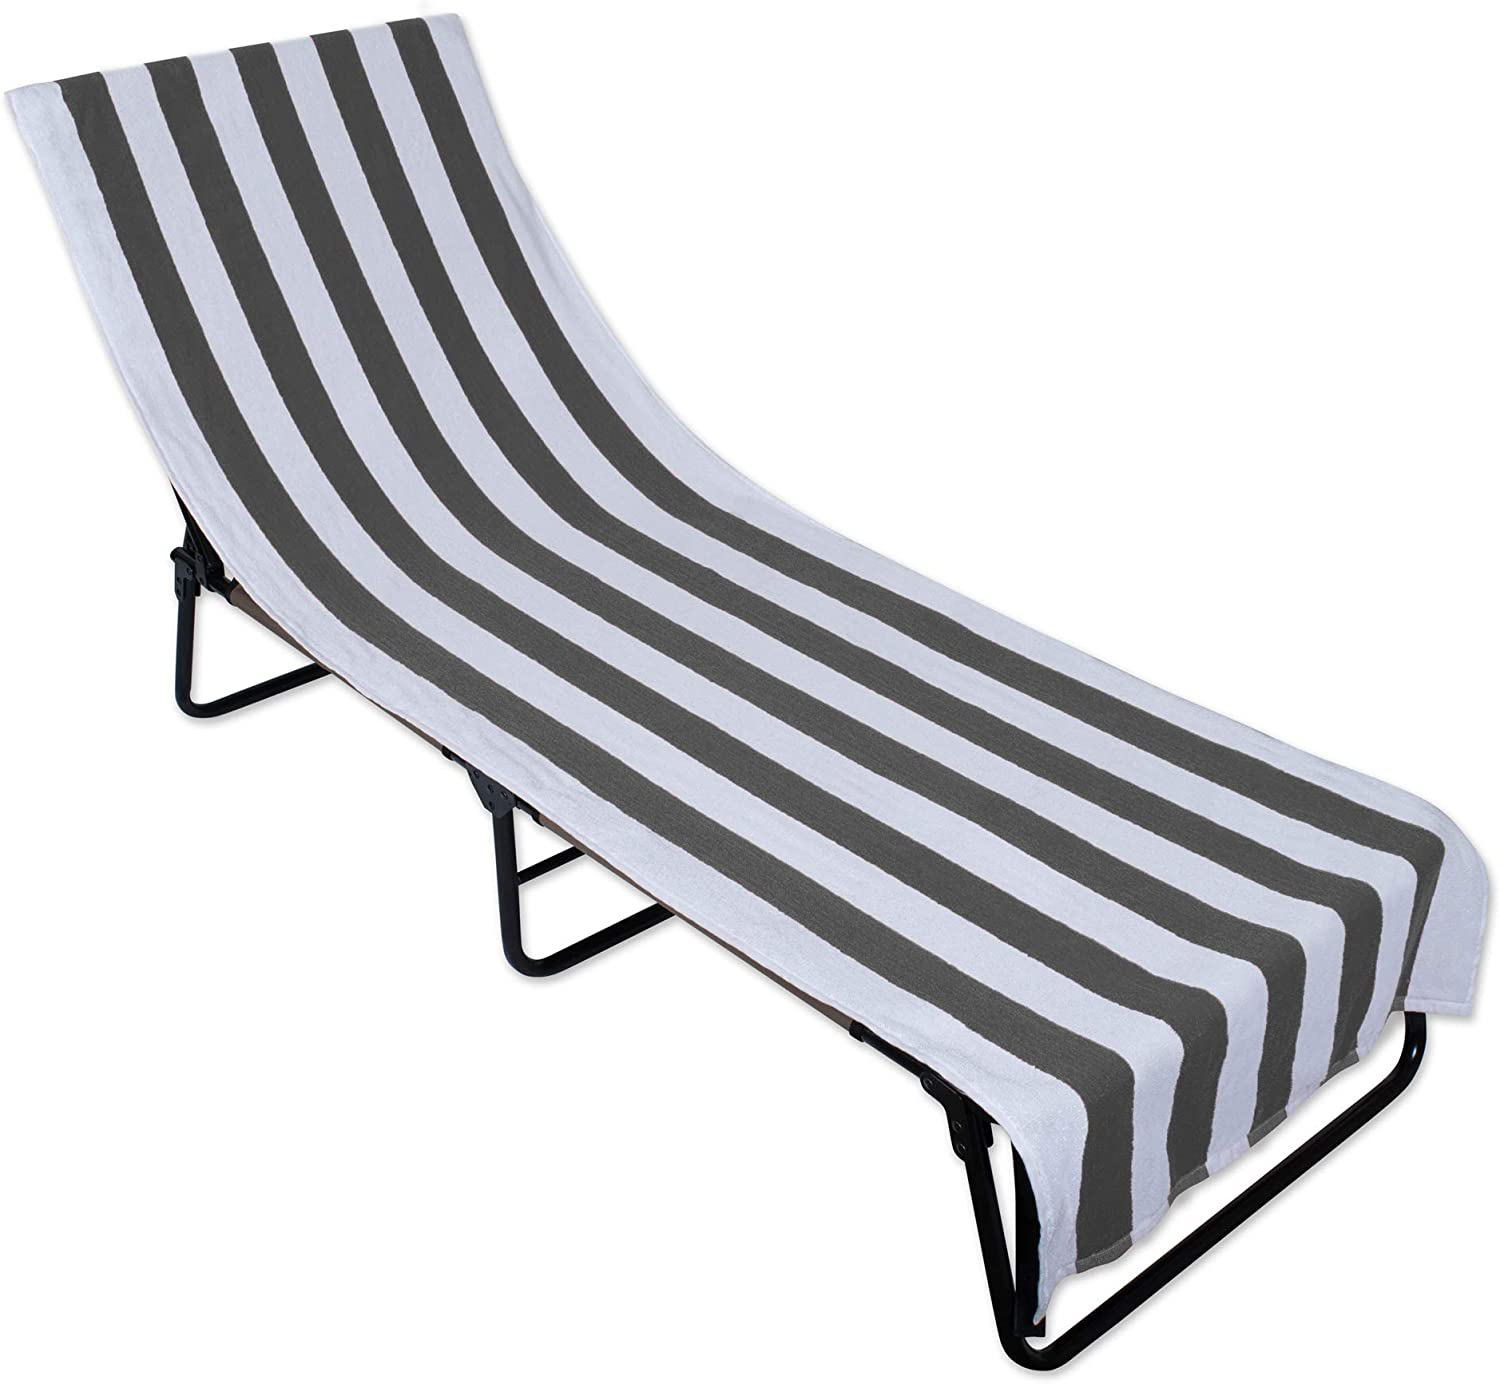 DII Stripe Beach Lounge Chair Towel with Fitted Top Pocket, 26x82, Gray